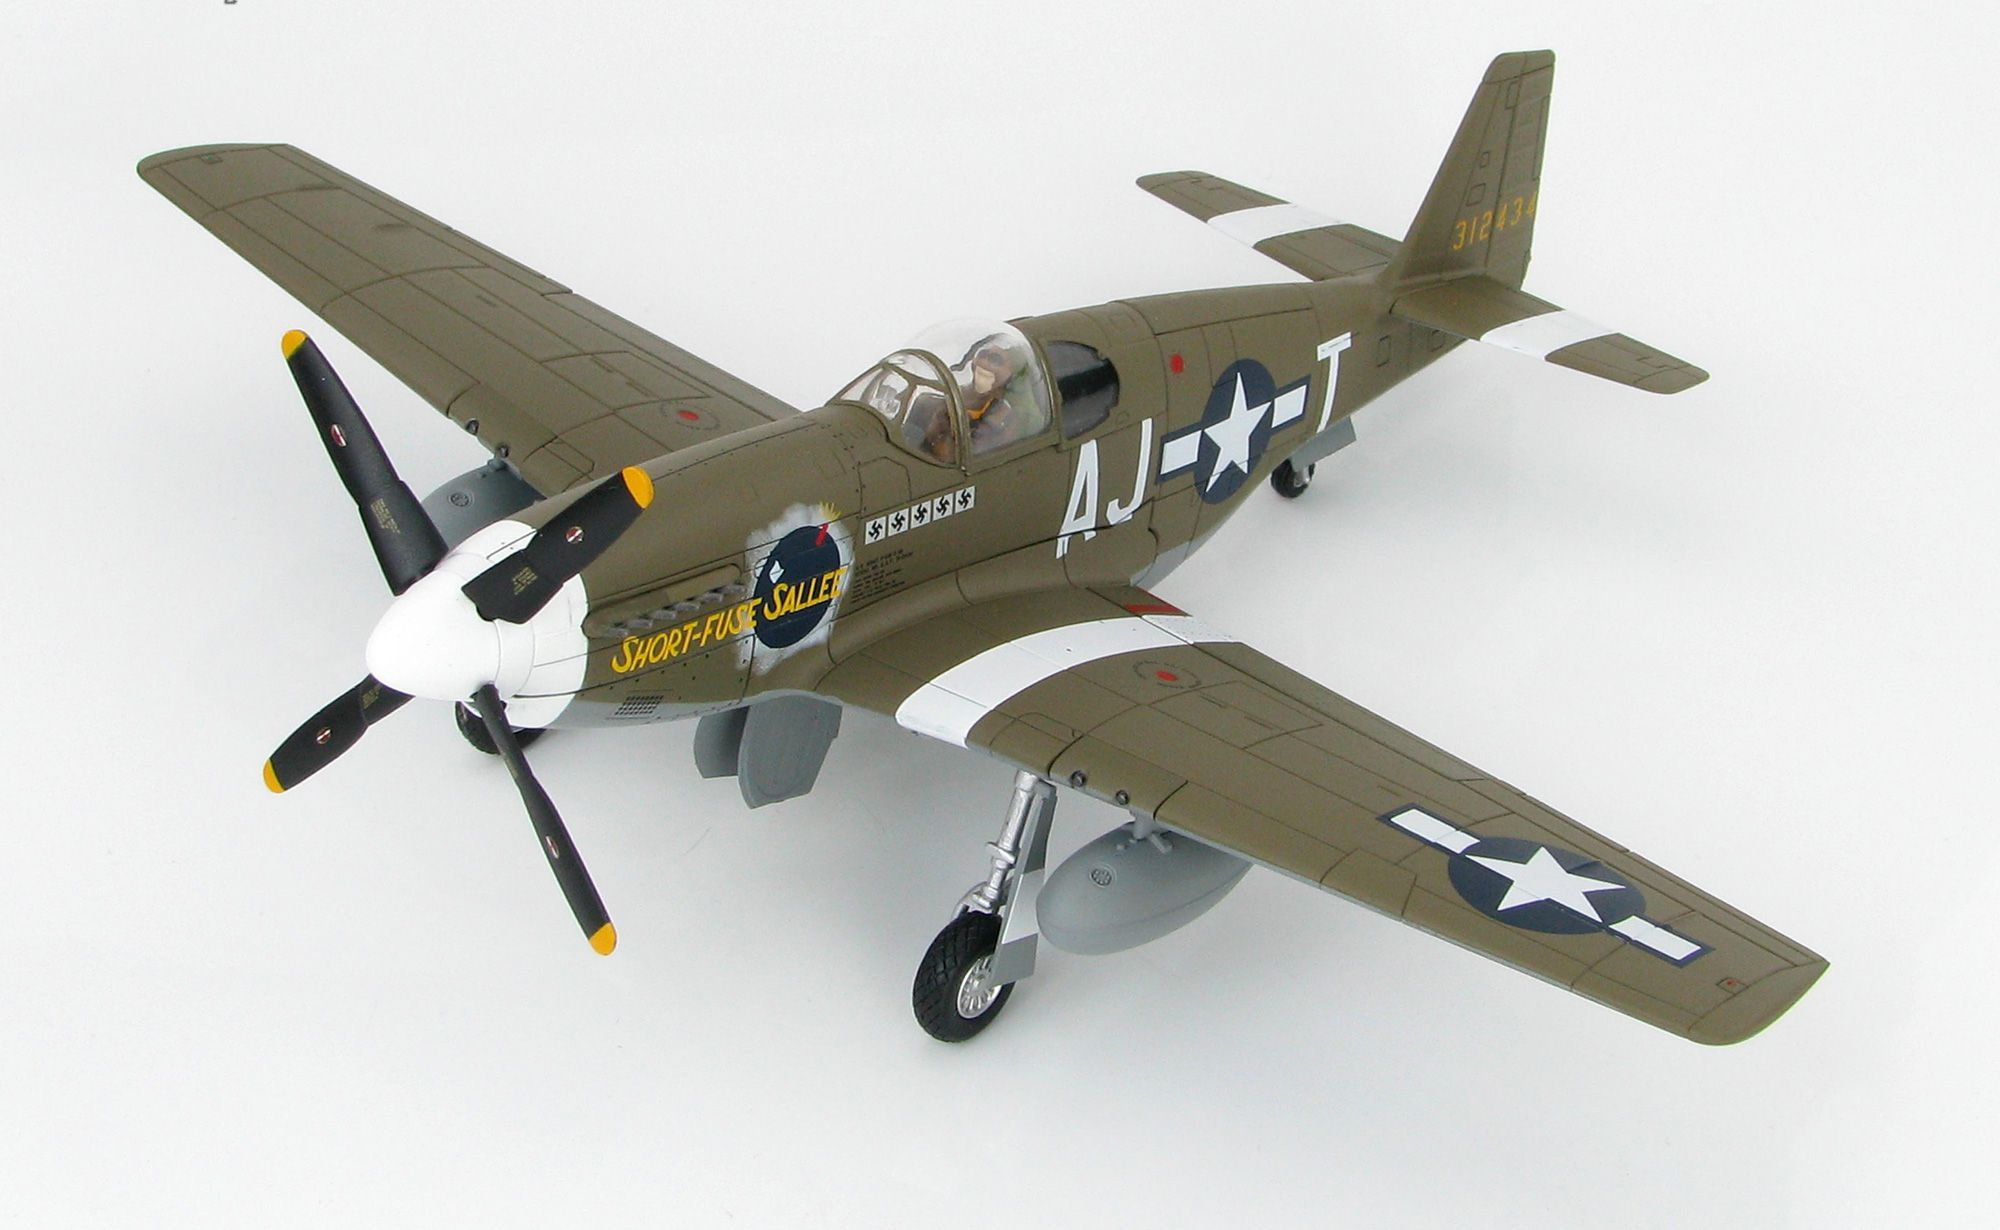 Picture Gallery for Hobby Master HA8509 North American P-51B Mustang 43-12434 Short-Fuse Sallee (USA